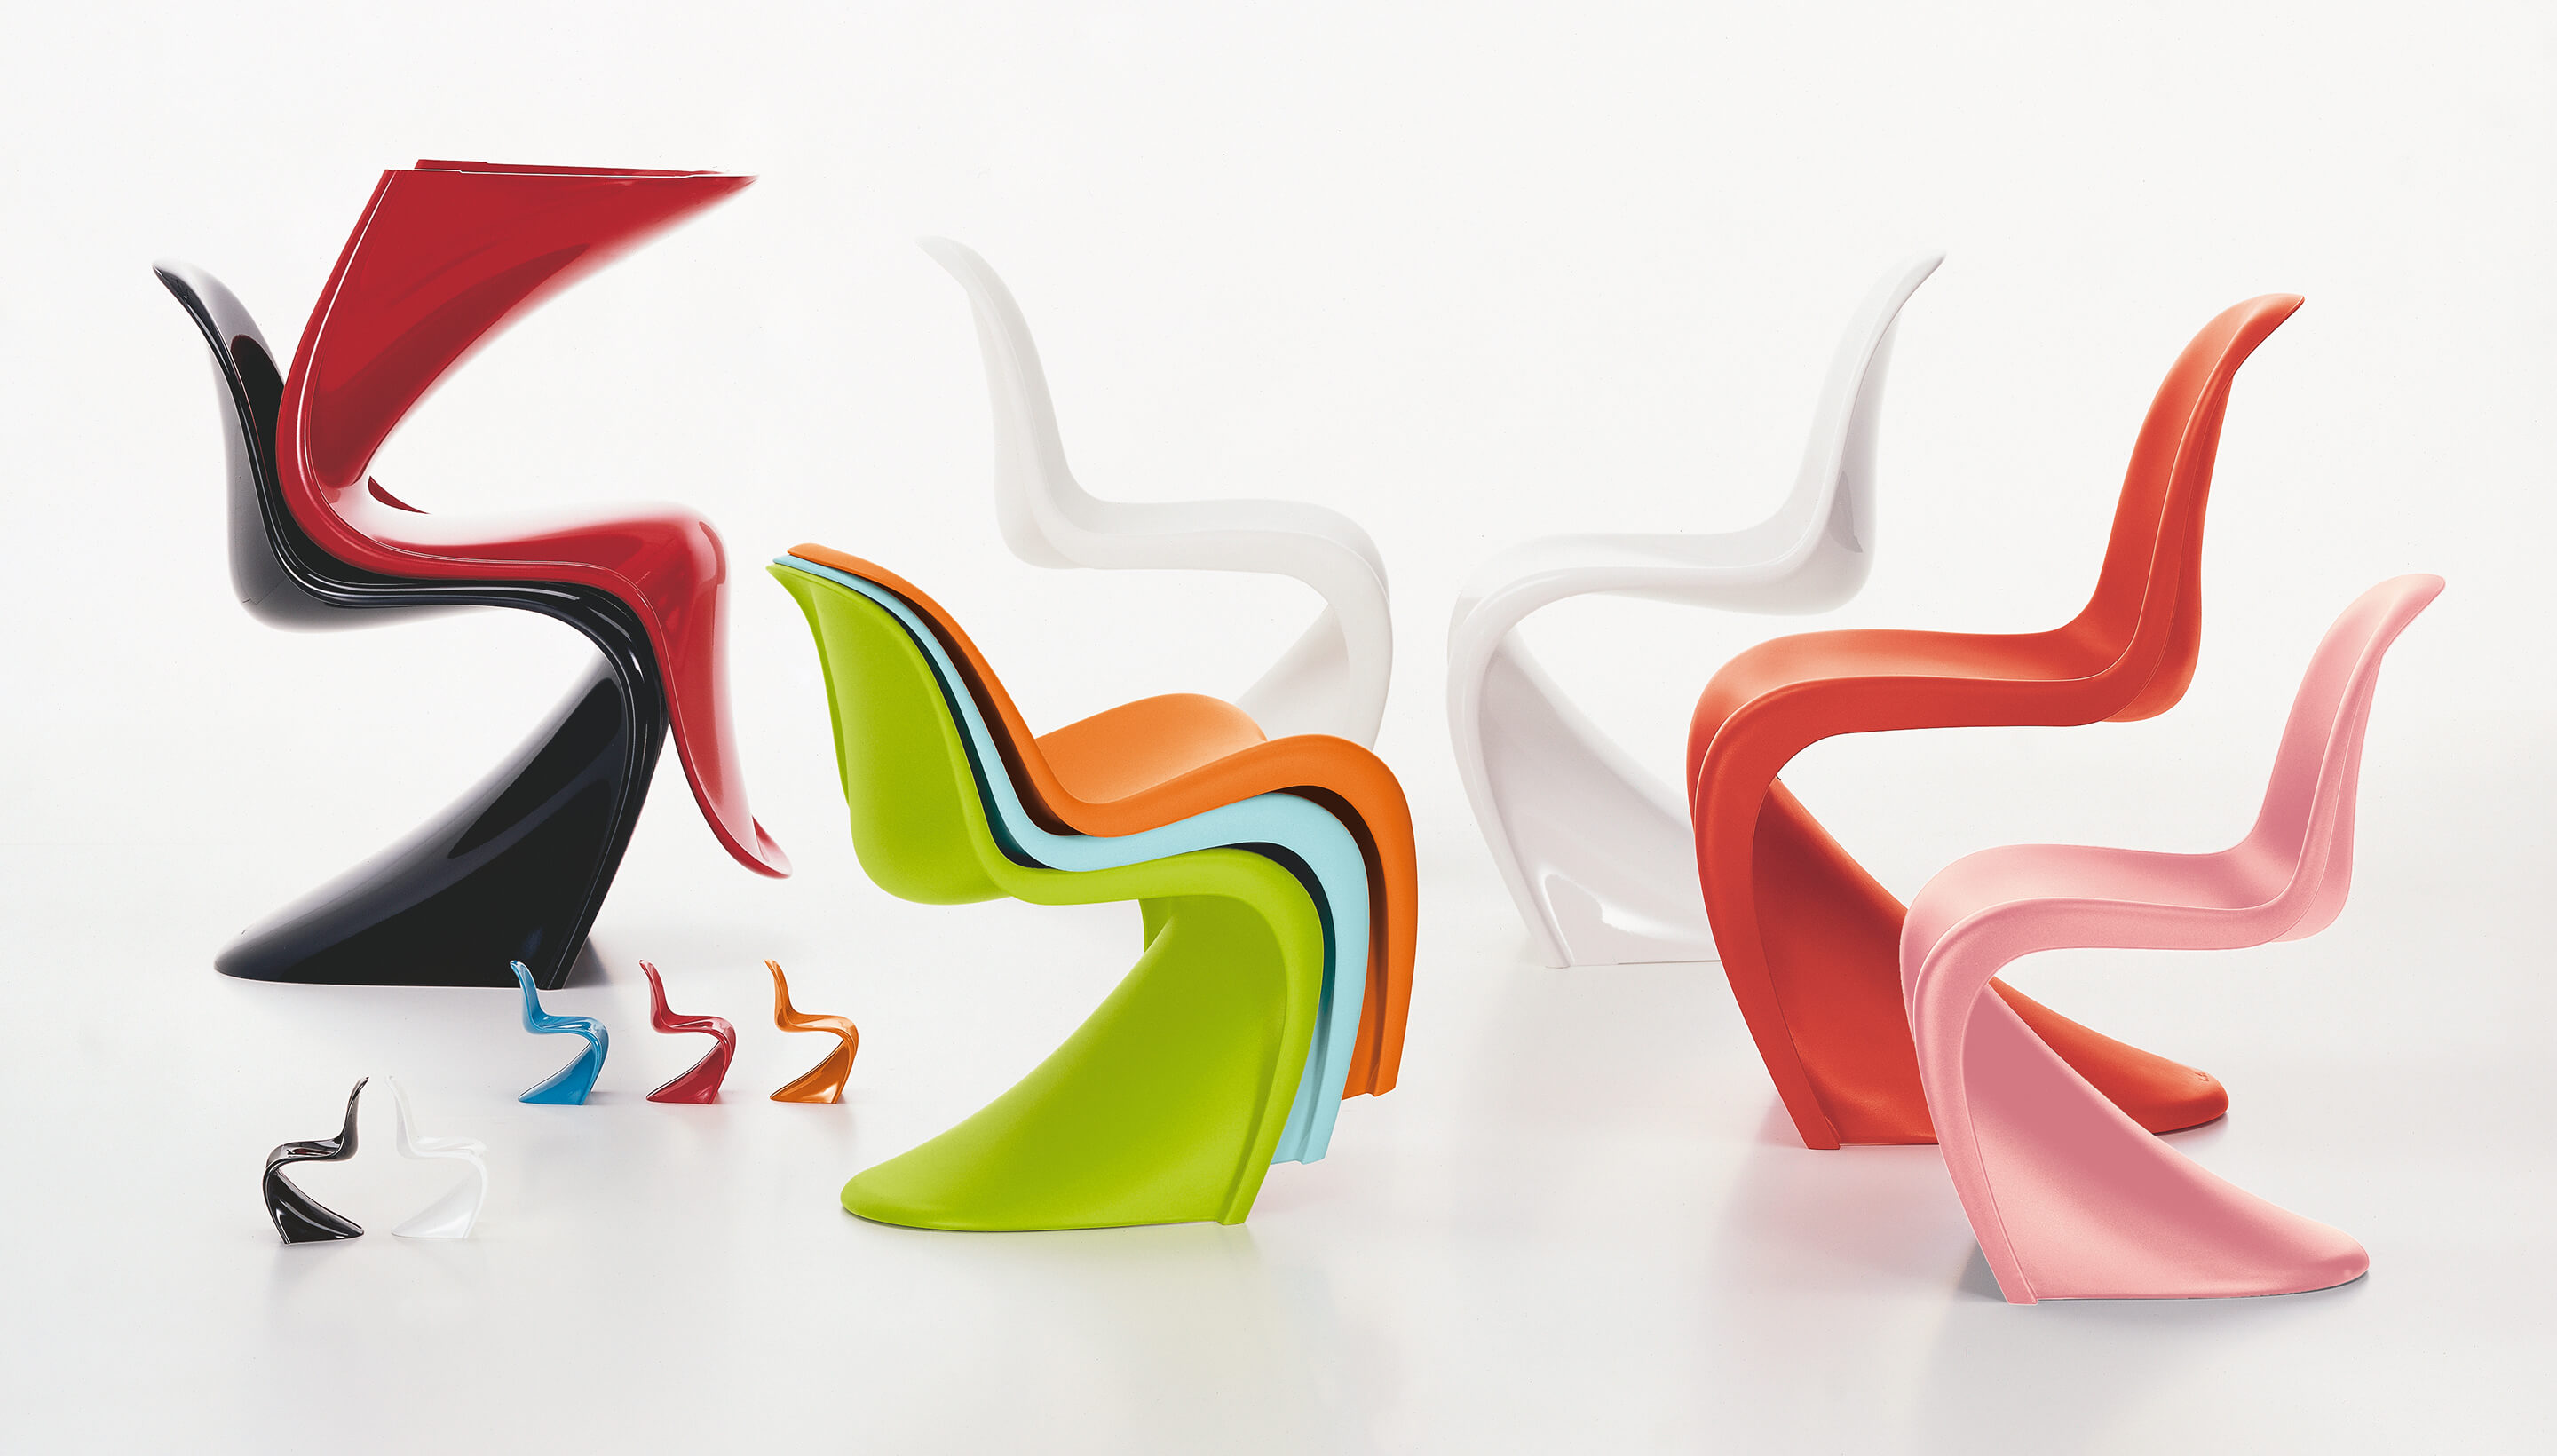 Vitra Panton Chair vitra vitra panton chair workbrands